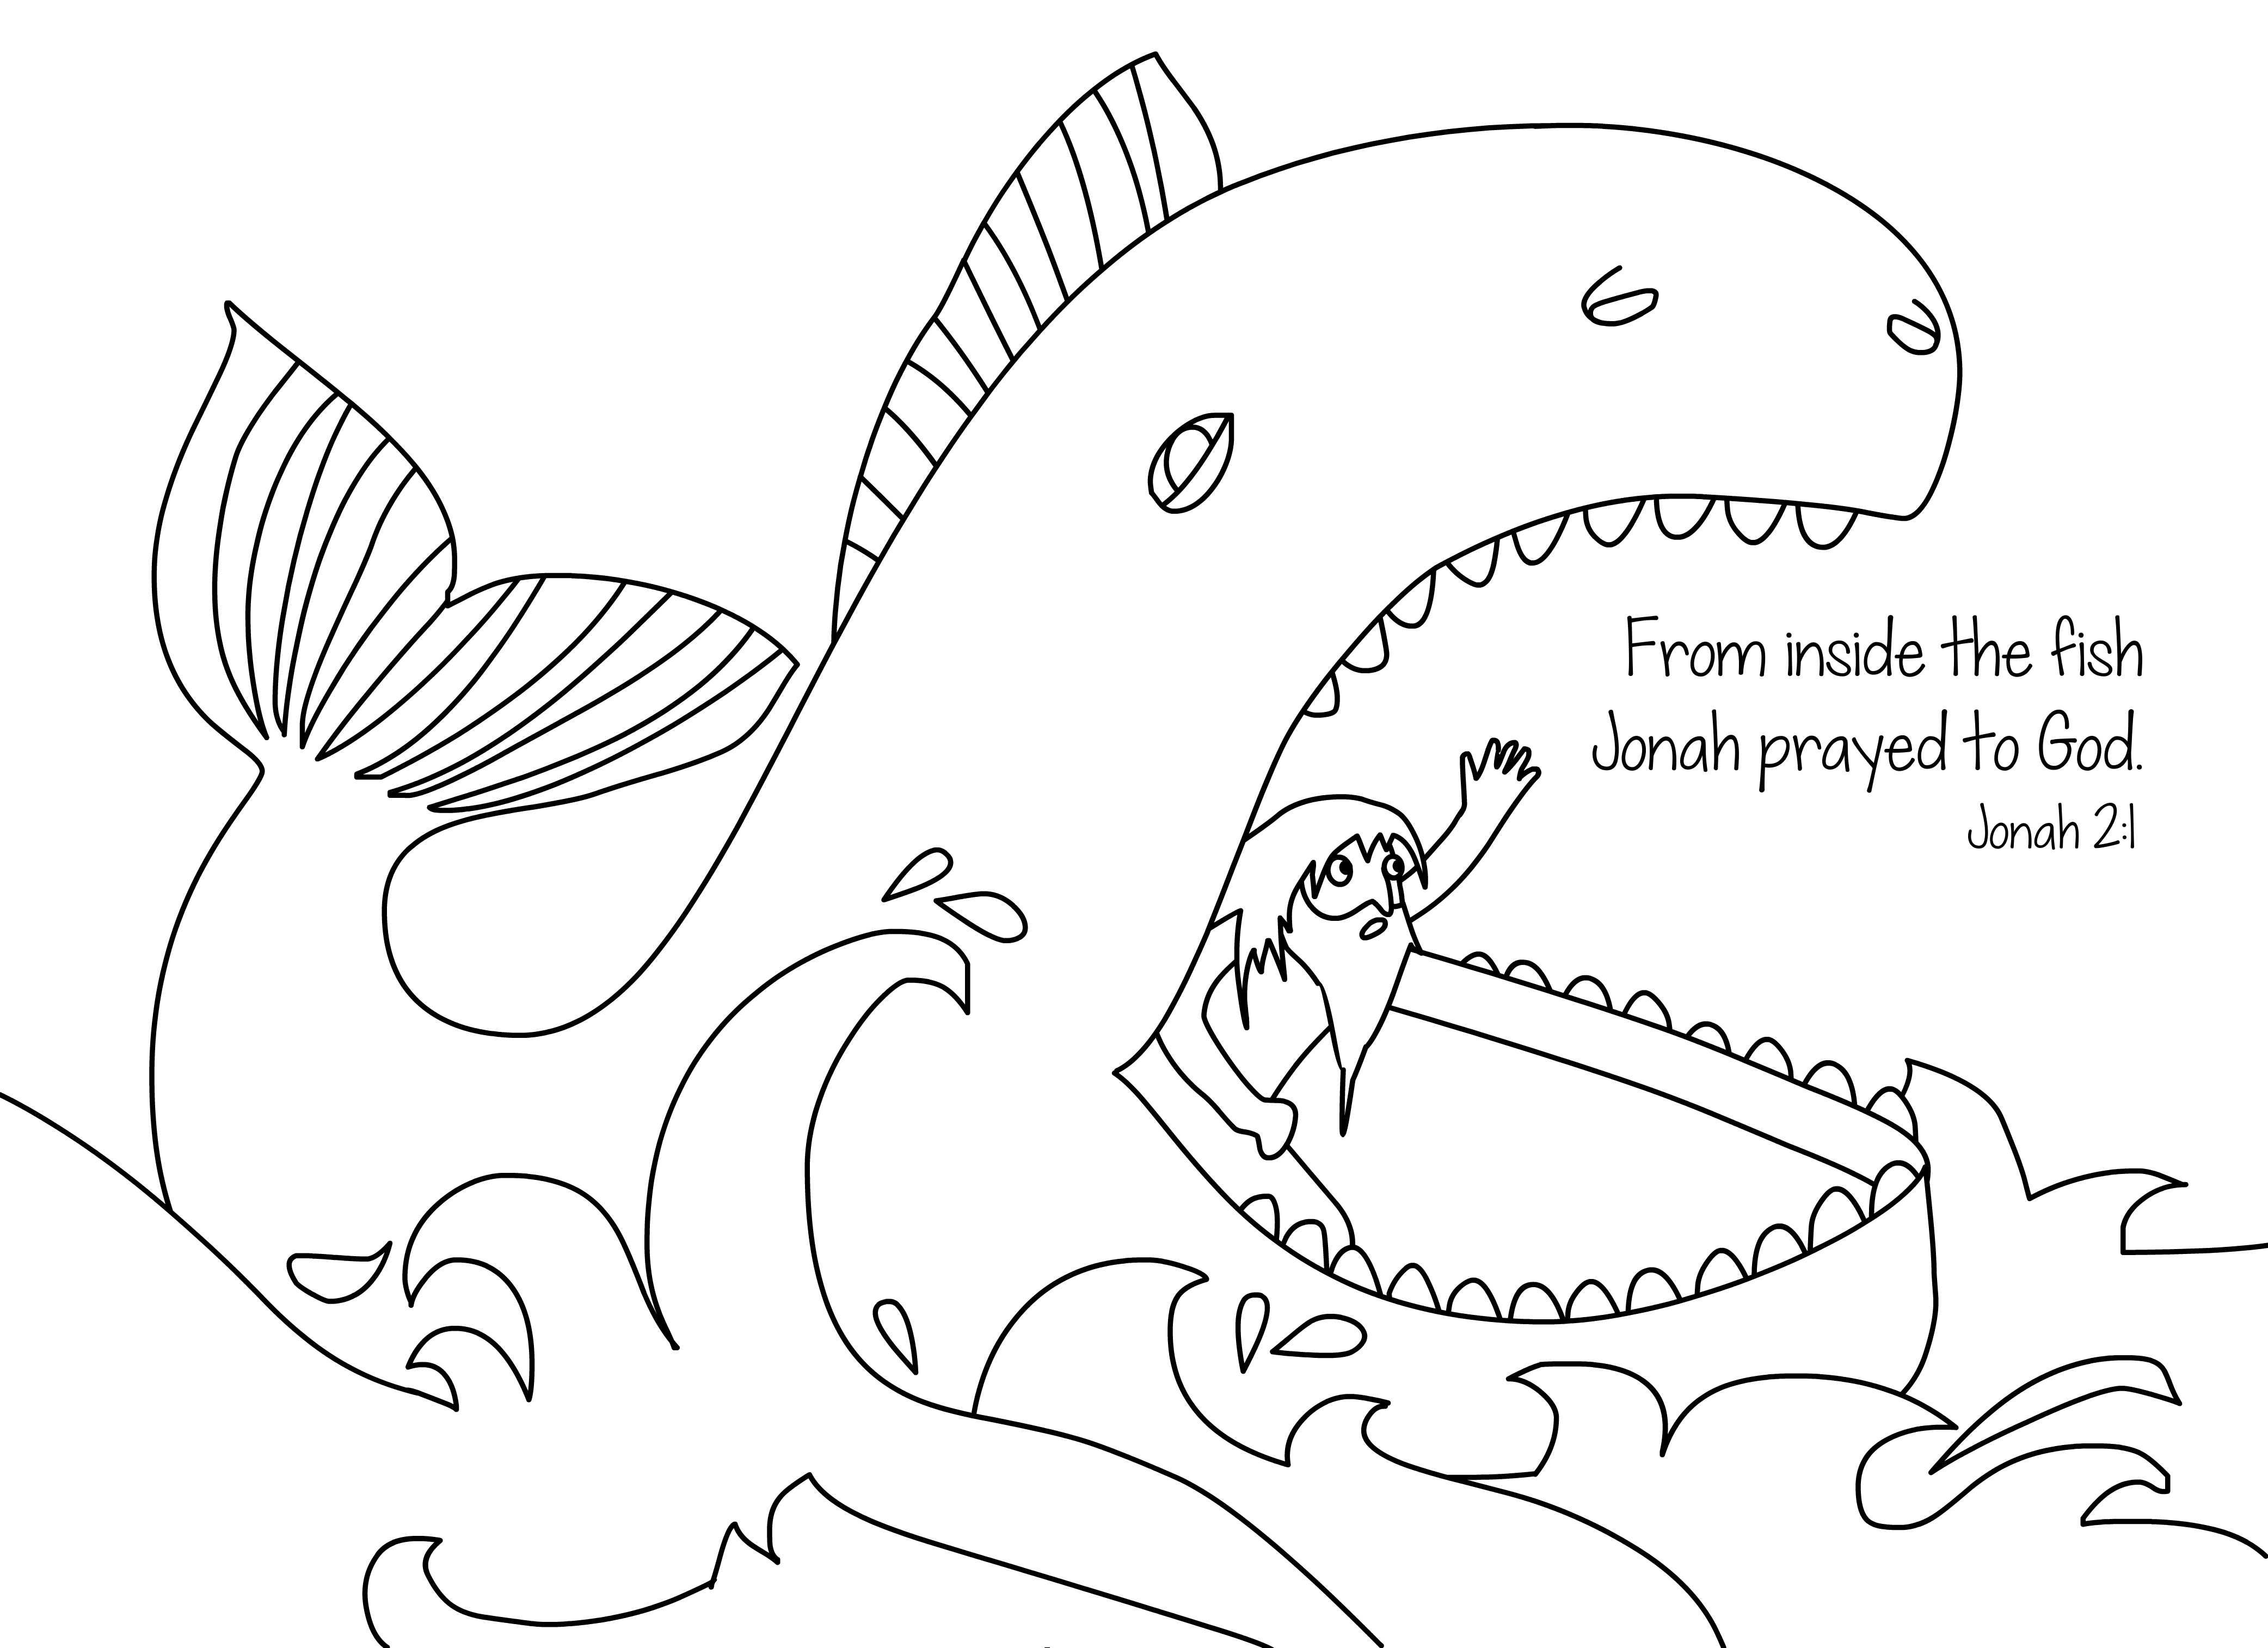 jonah coloring page jonah preschool coloring pages food ideas jonah page coloring